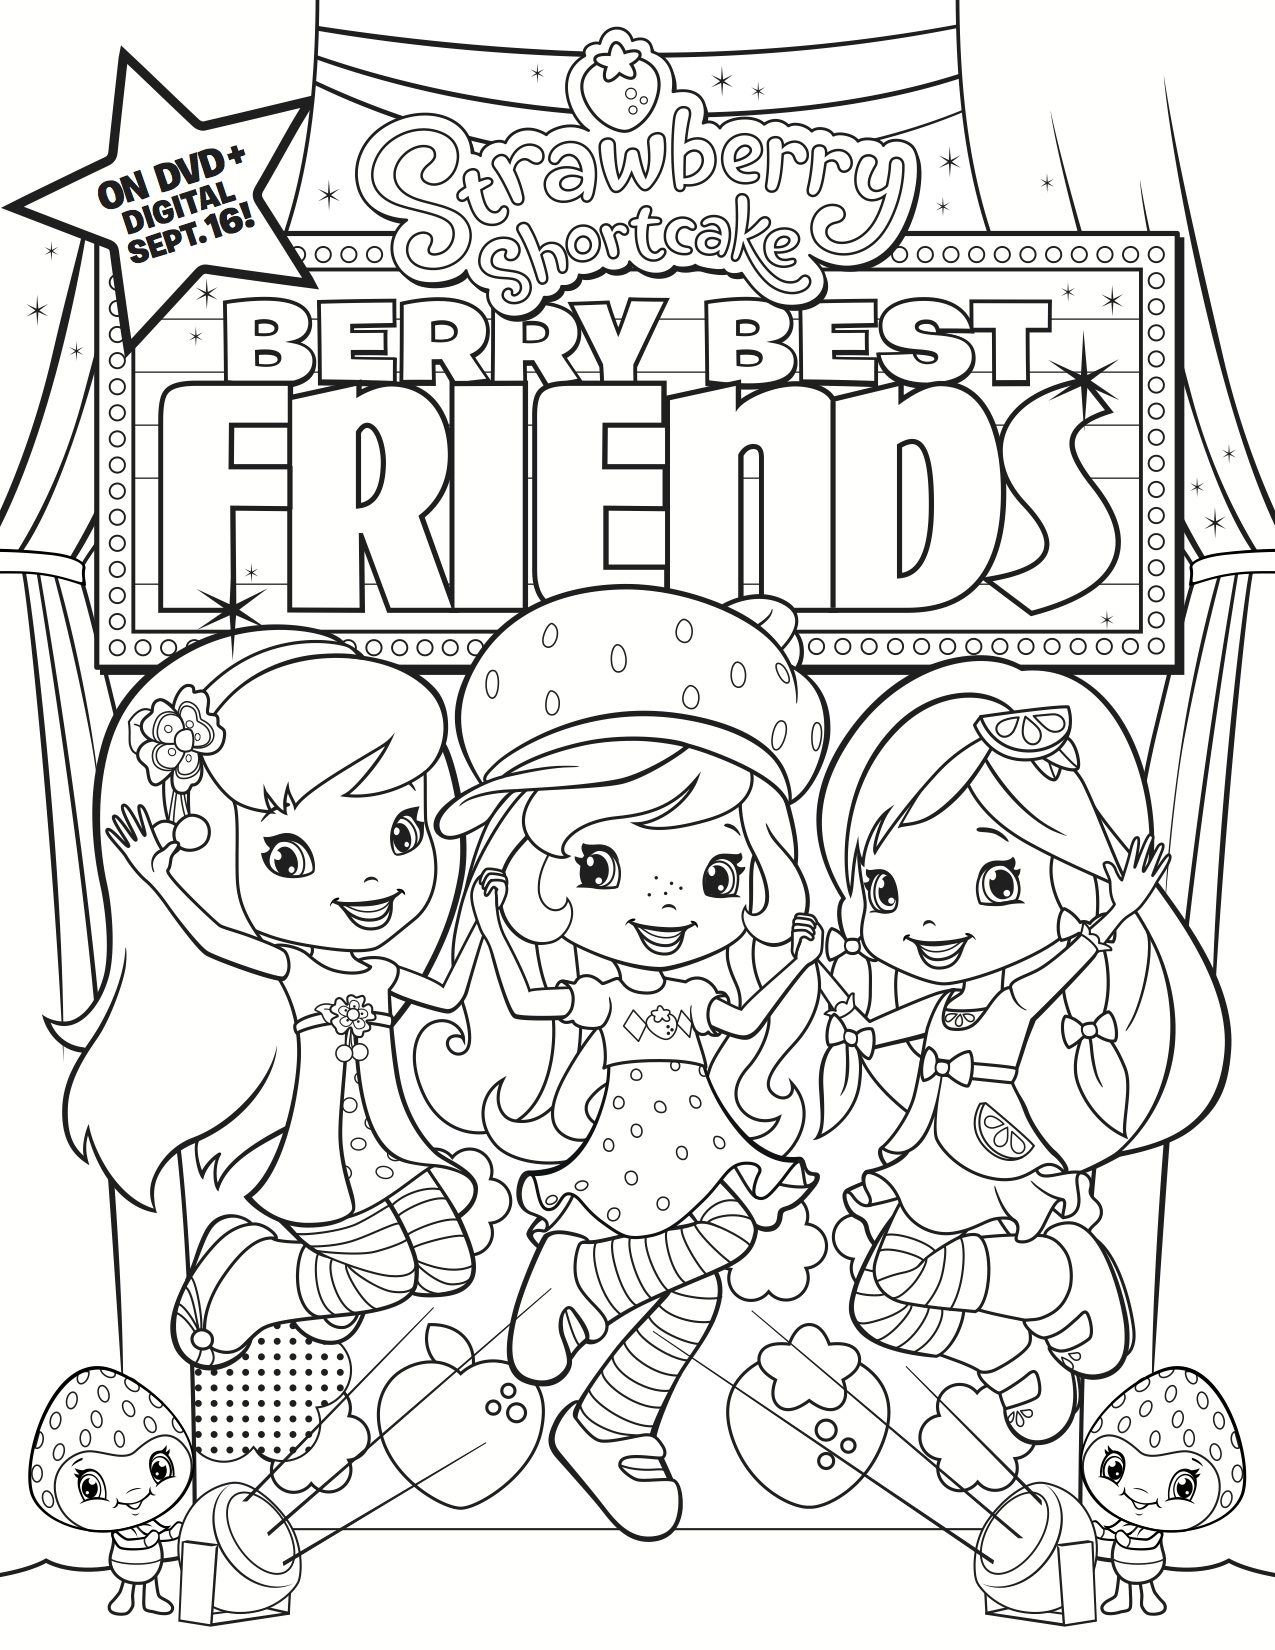 coloring pages strawberry shortcake and friends - strawberry shortcake archives living in random